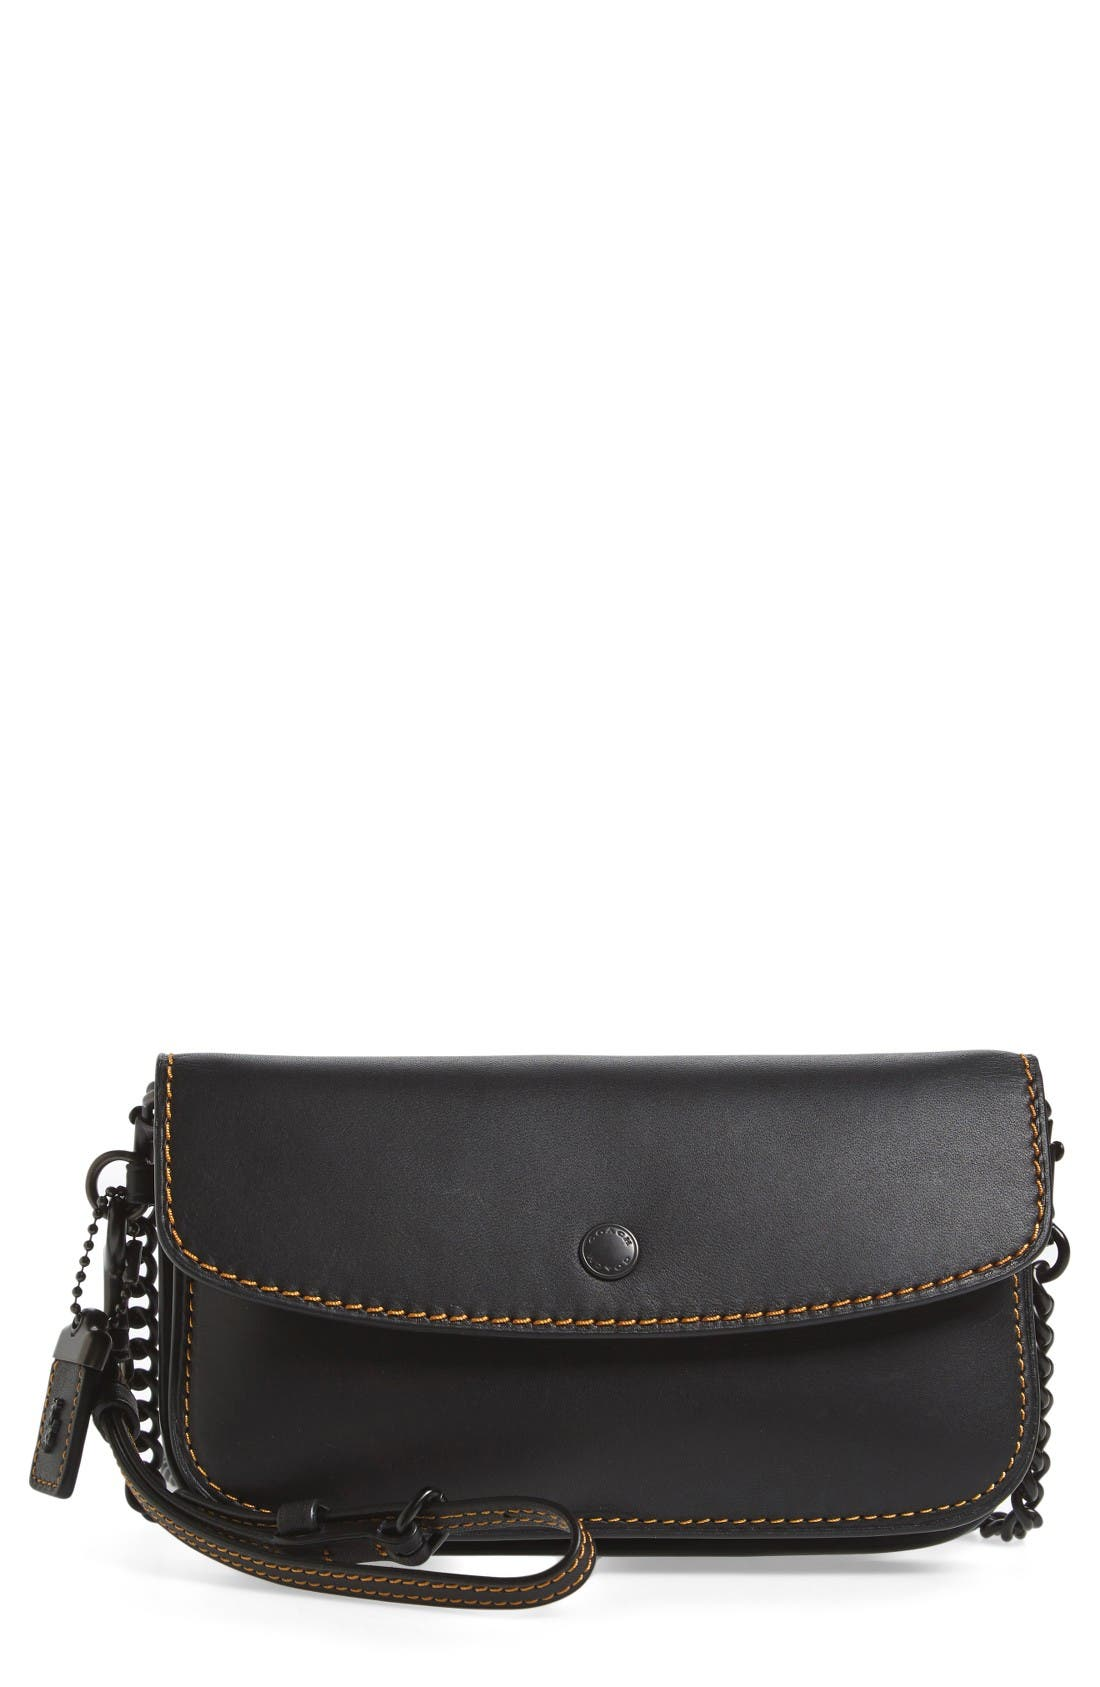 COACH 1941 Leather Clutch